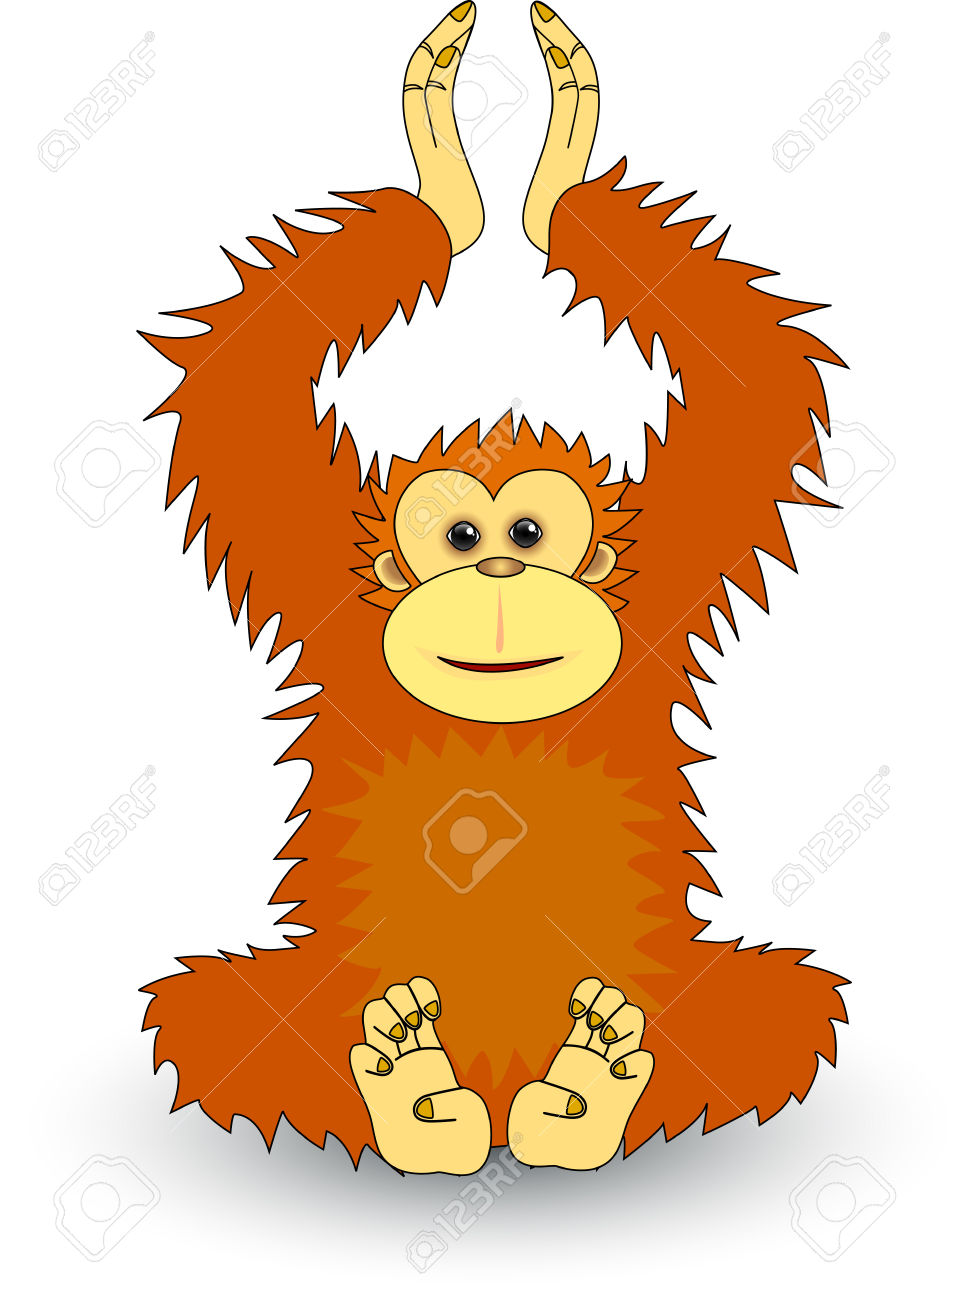 Orangutan clipart #2, Download drawings